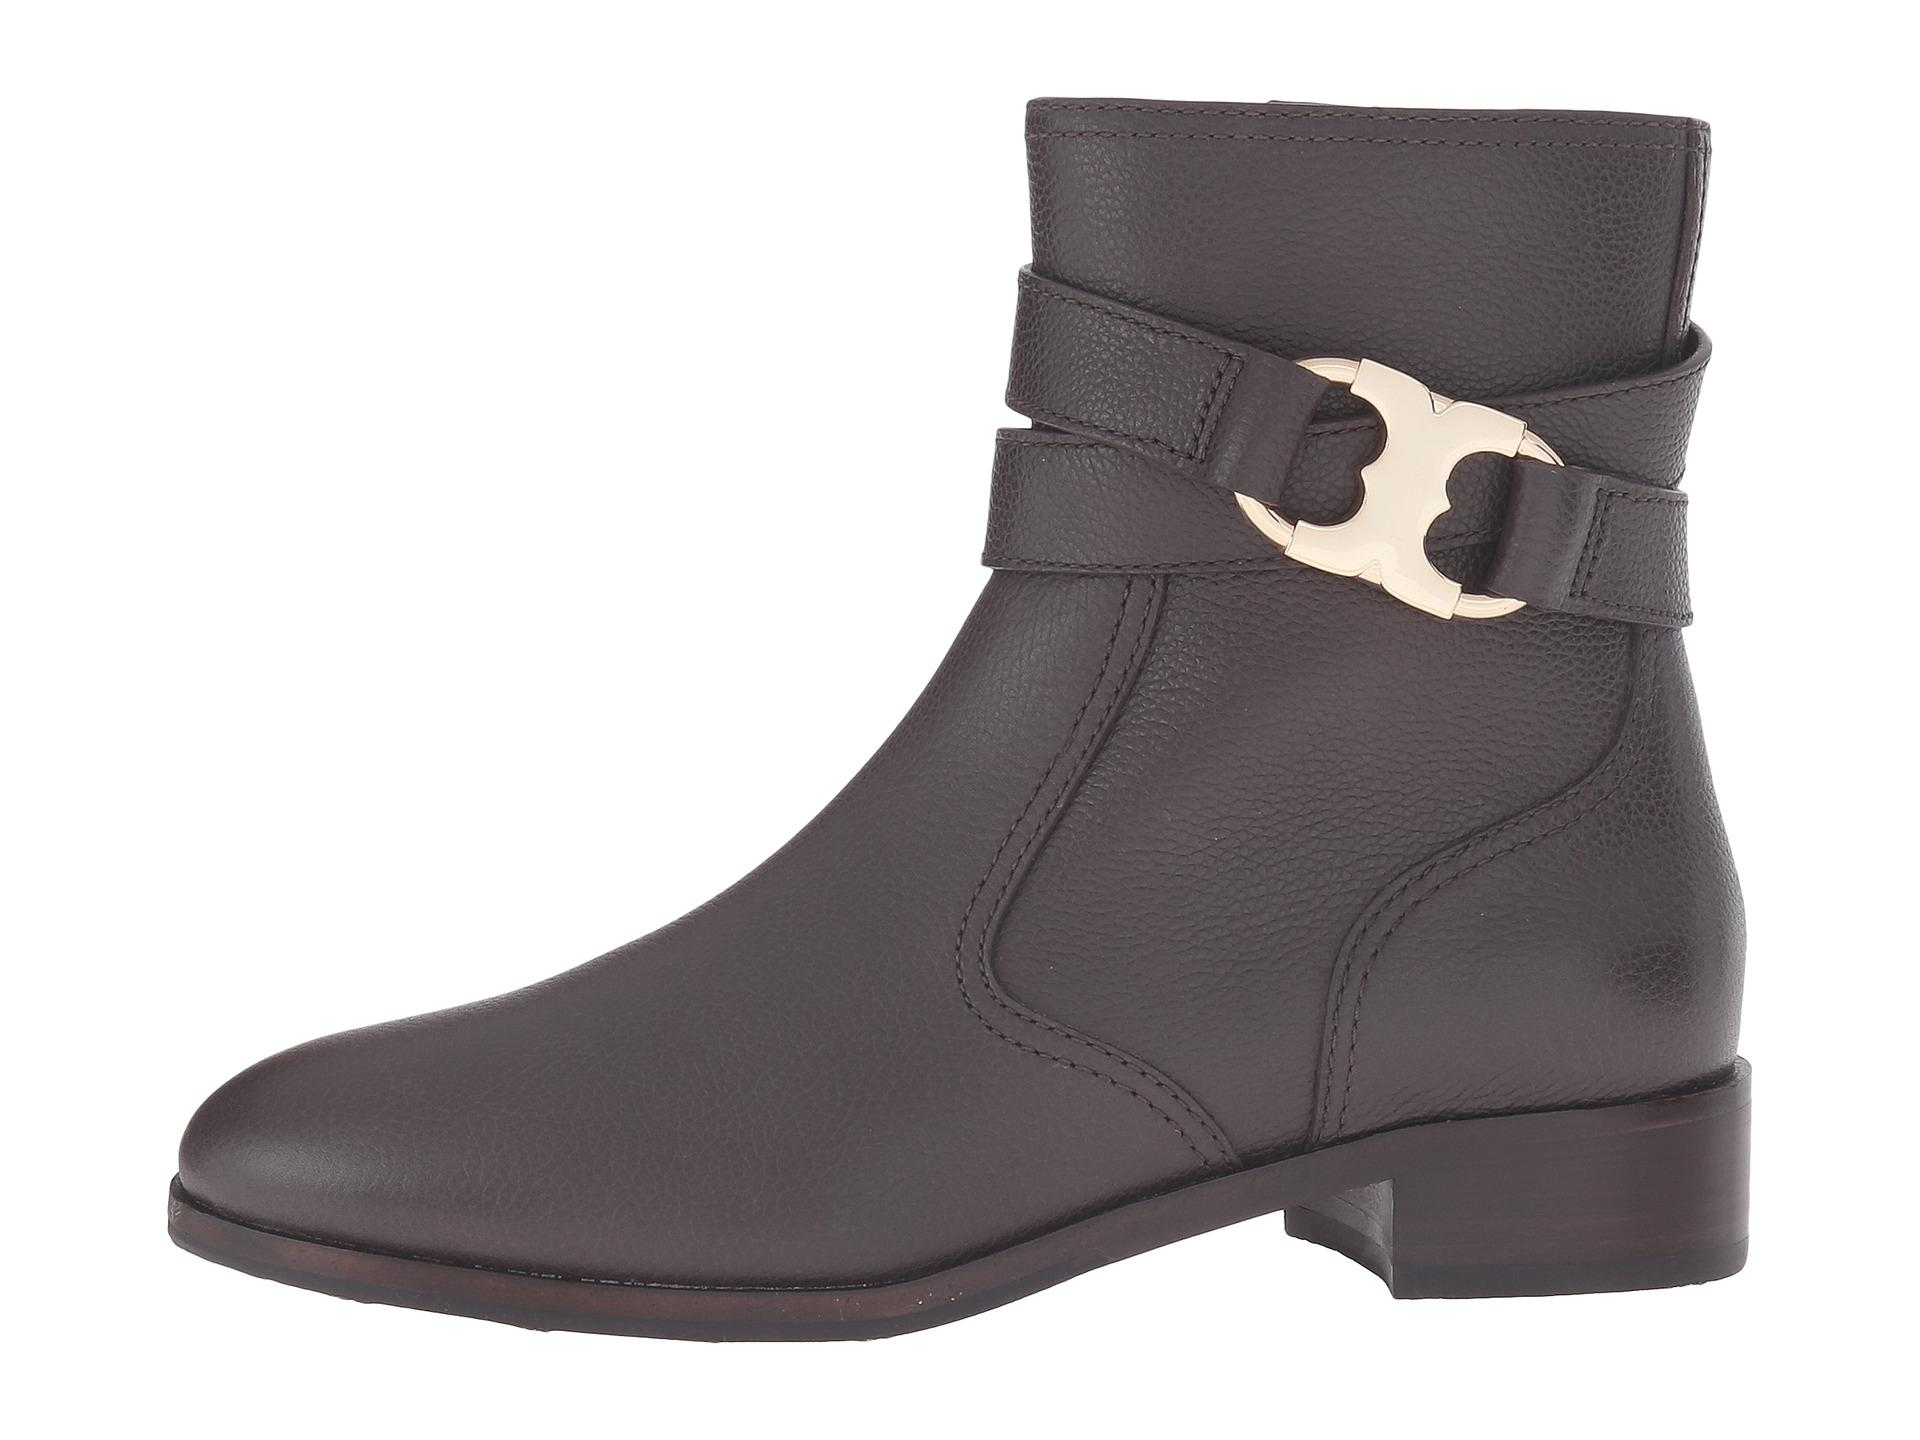 Tory Burch Brown Gemini Link Coconut Tumbled Leather Boots/Booties Size US 8.5 Regular (M, B)